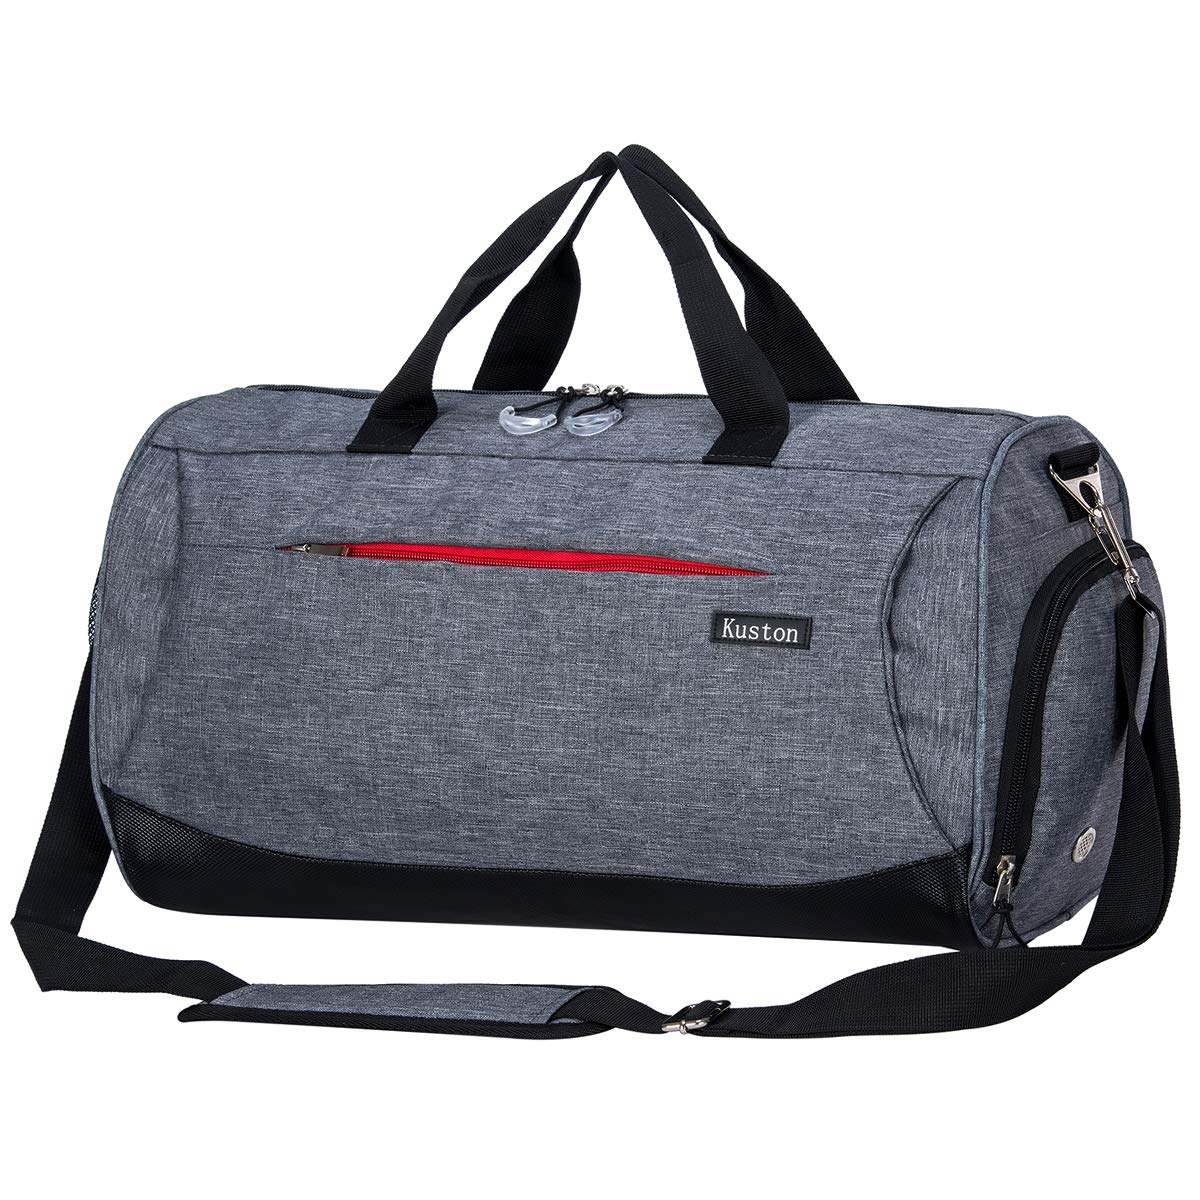 97913e9e0a Kuston Sports Gym Bag with Shoes Compartment Travel Duffel Bag for Men and  Women product image